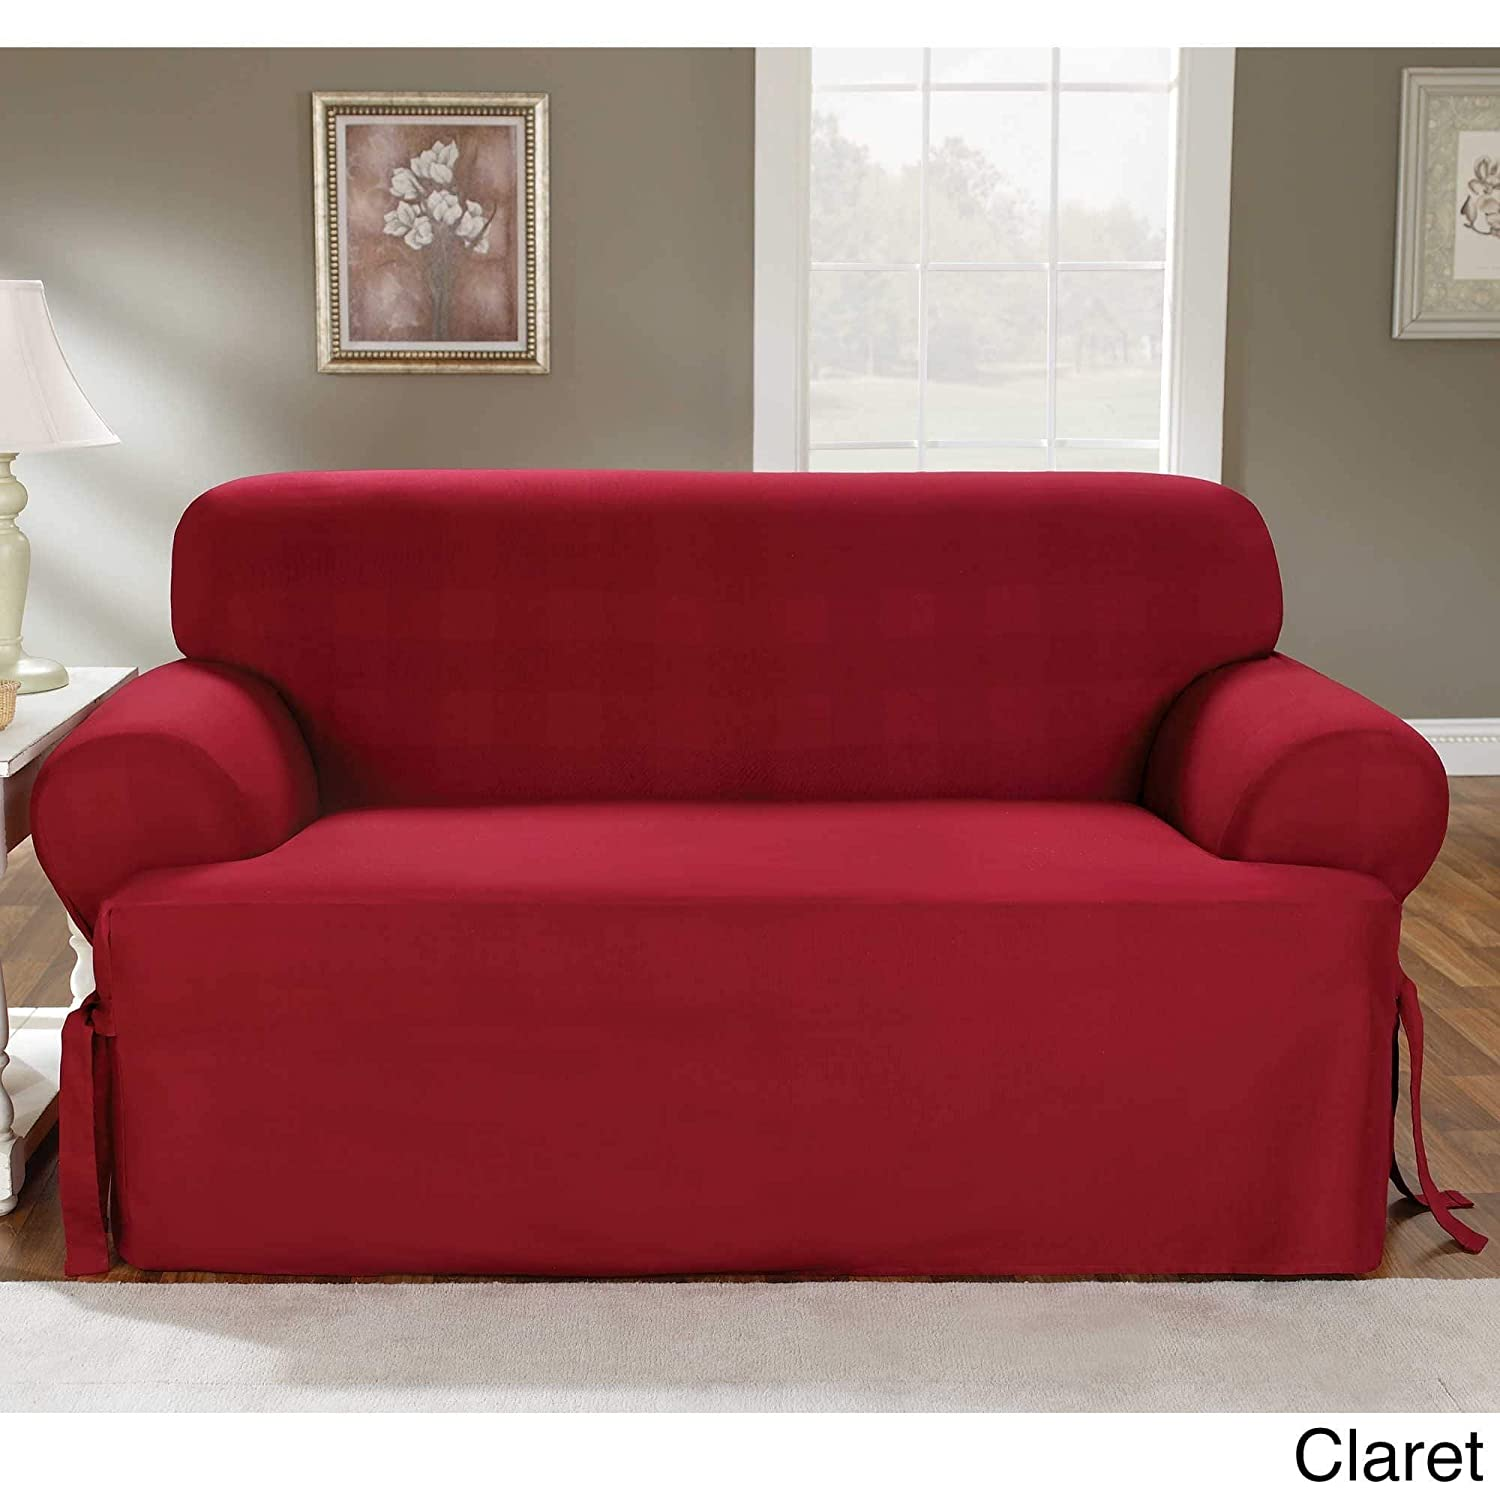 SureFit Duck Solid T-Cushion - Loveseat Slipcover - Claret (SF33878) Surefit Inc.